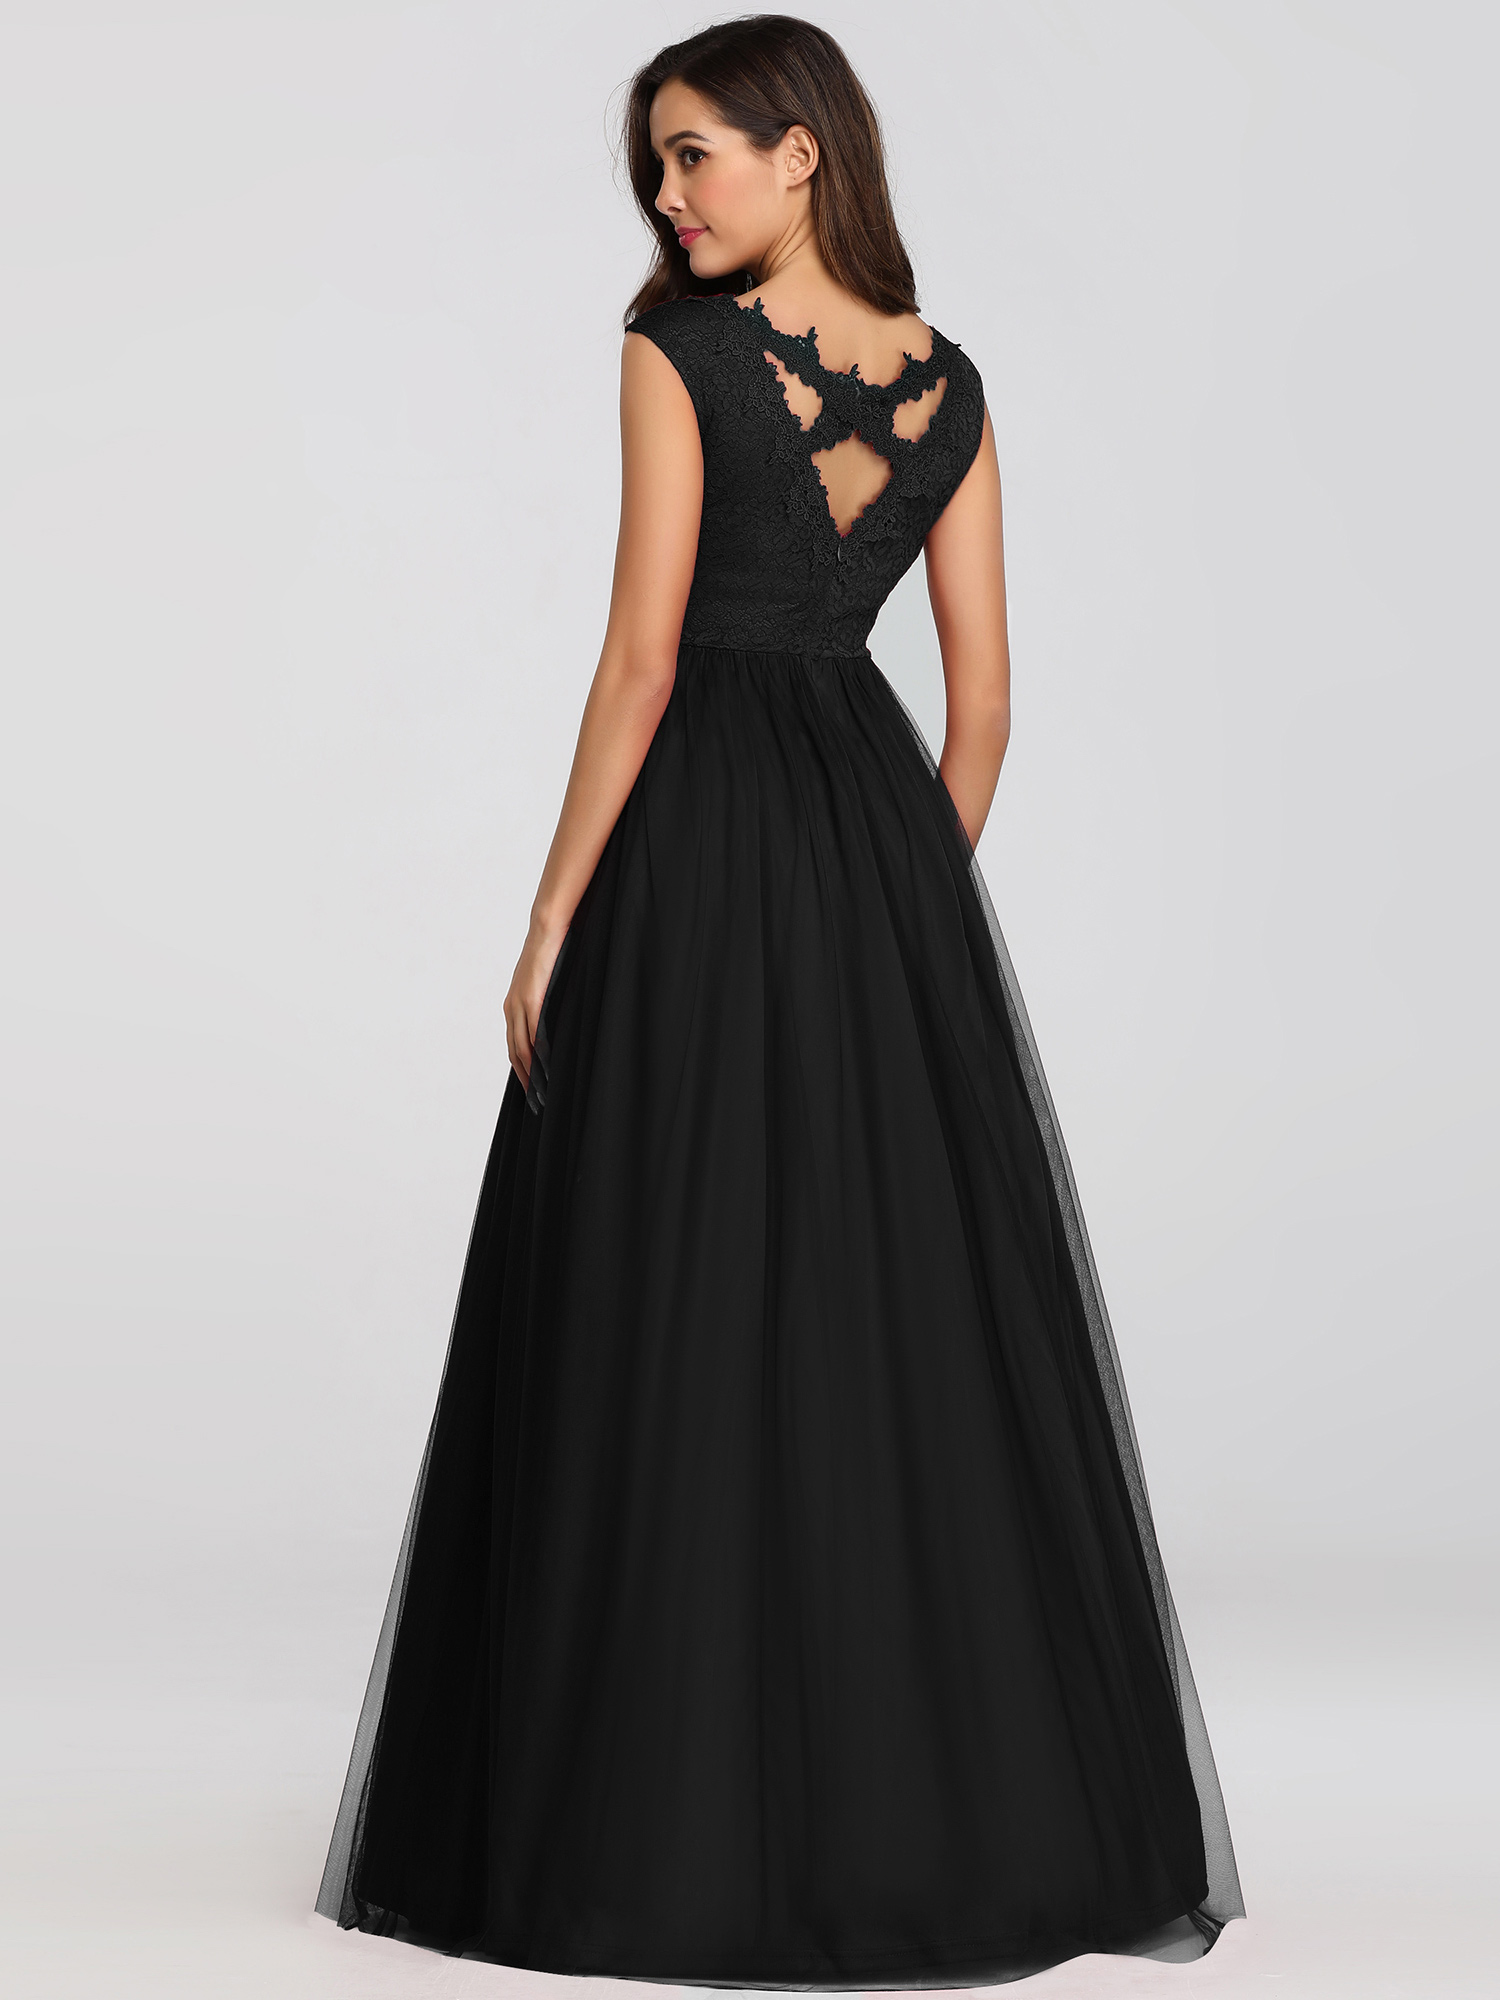 US Ever-pretty Long Red Formal Evening Party Dresses Cocktail Prom Gowns 08110